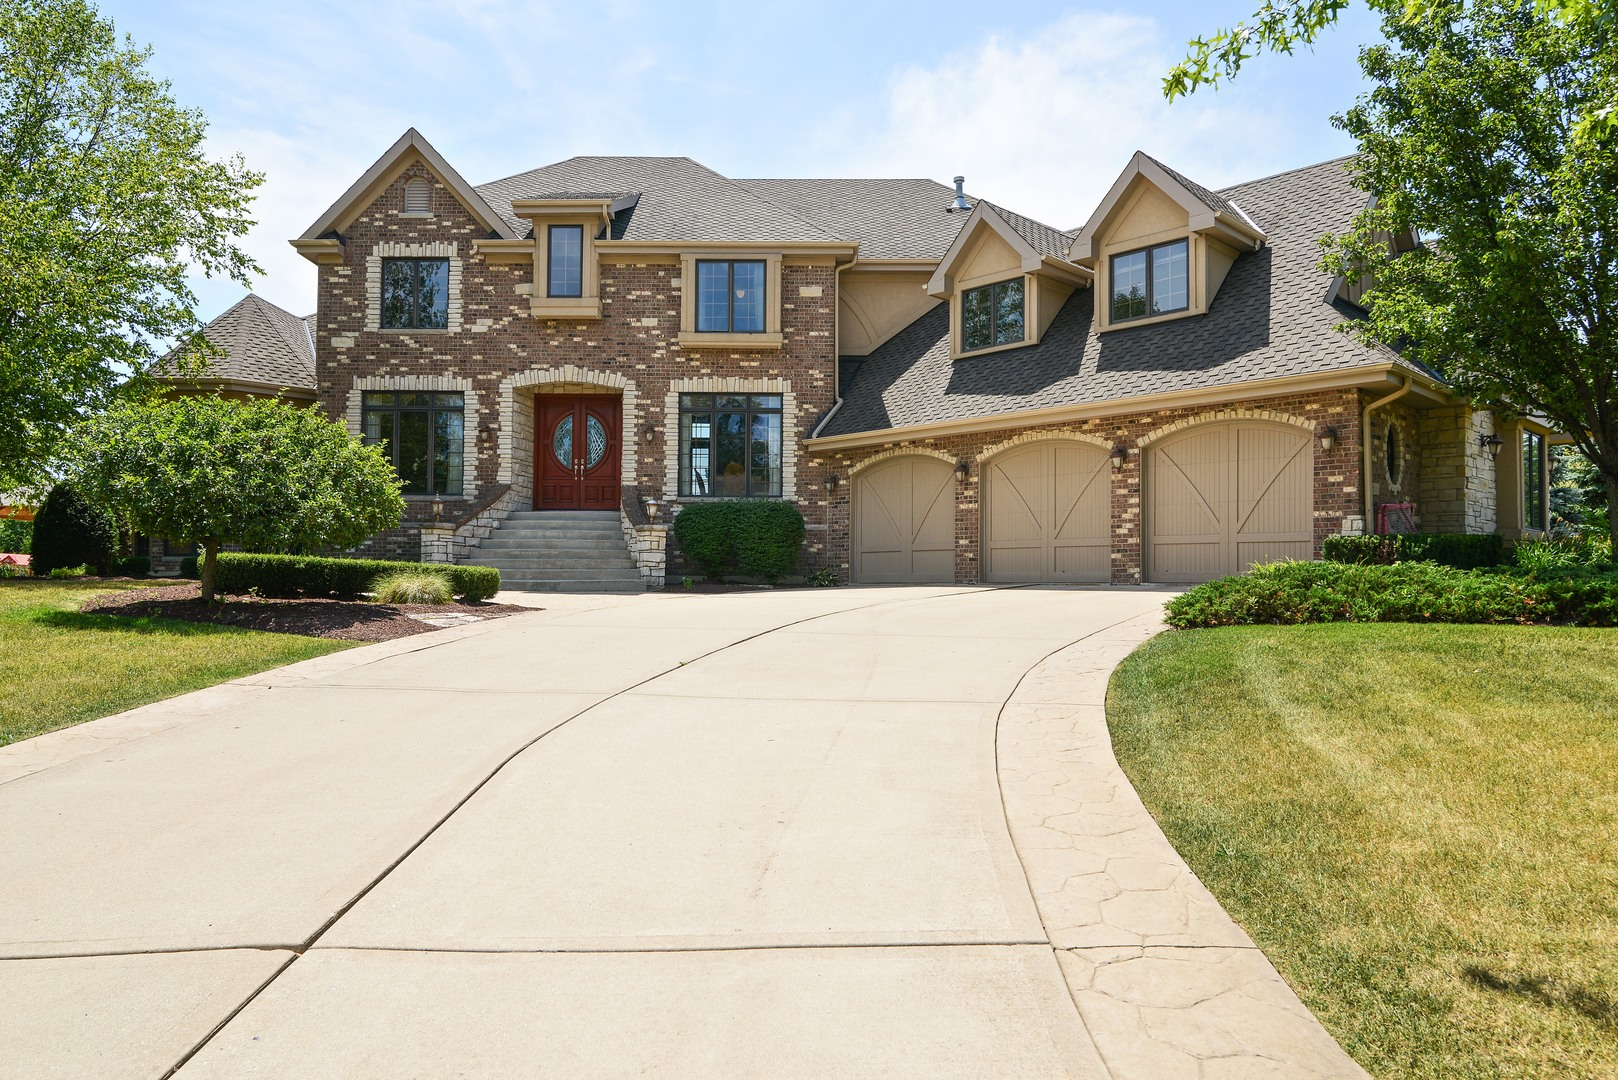 347 South Walnut Ridge Court, Frankfort in Will County, IL 60423 Home for Sale